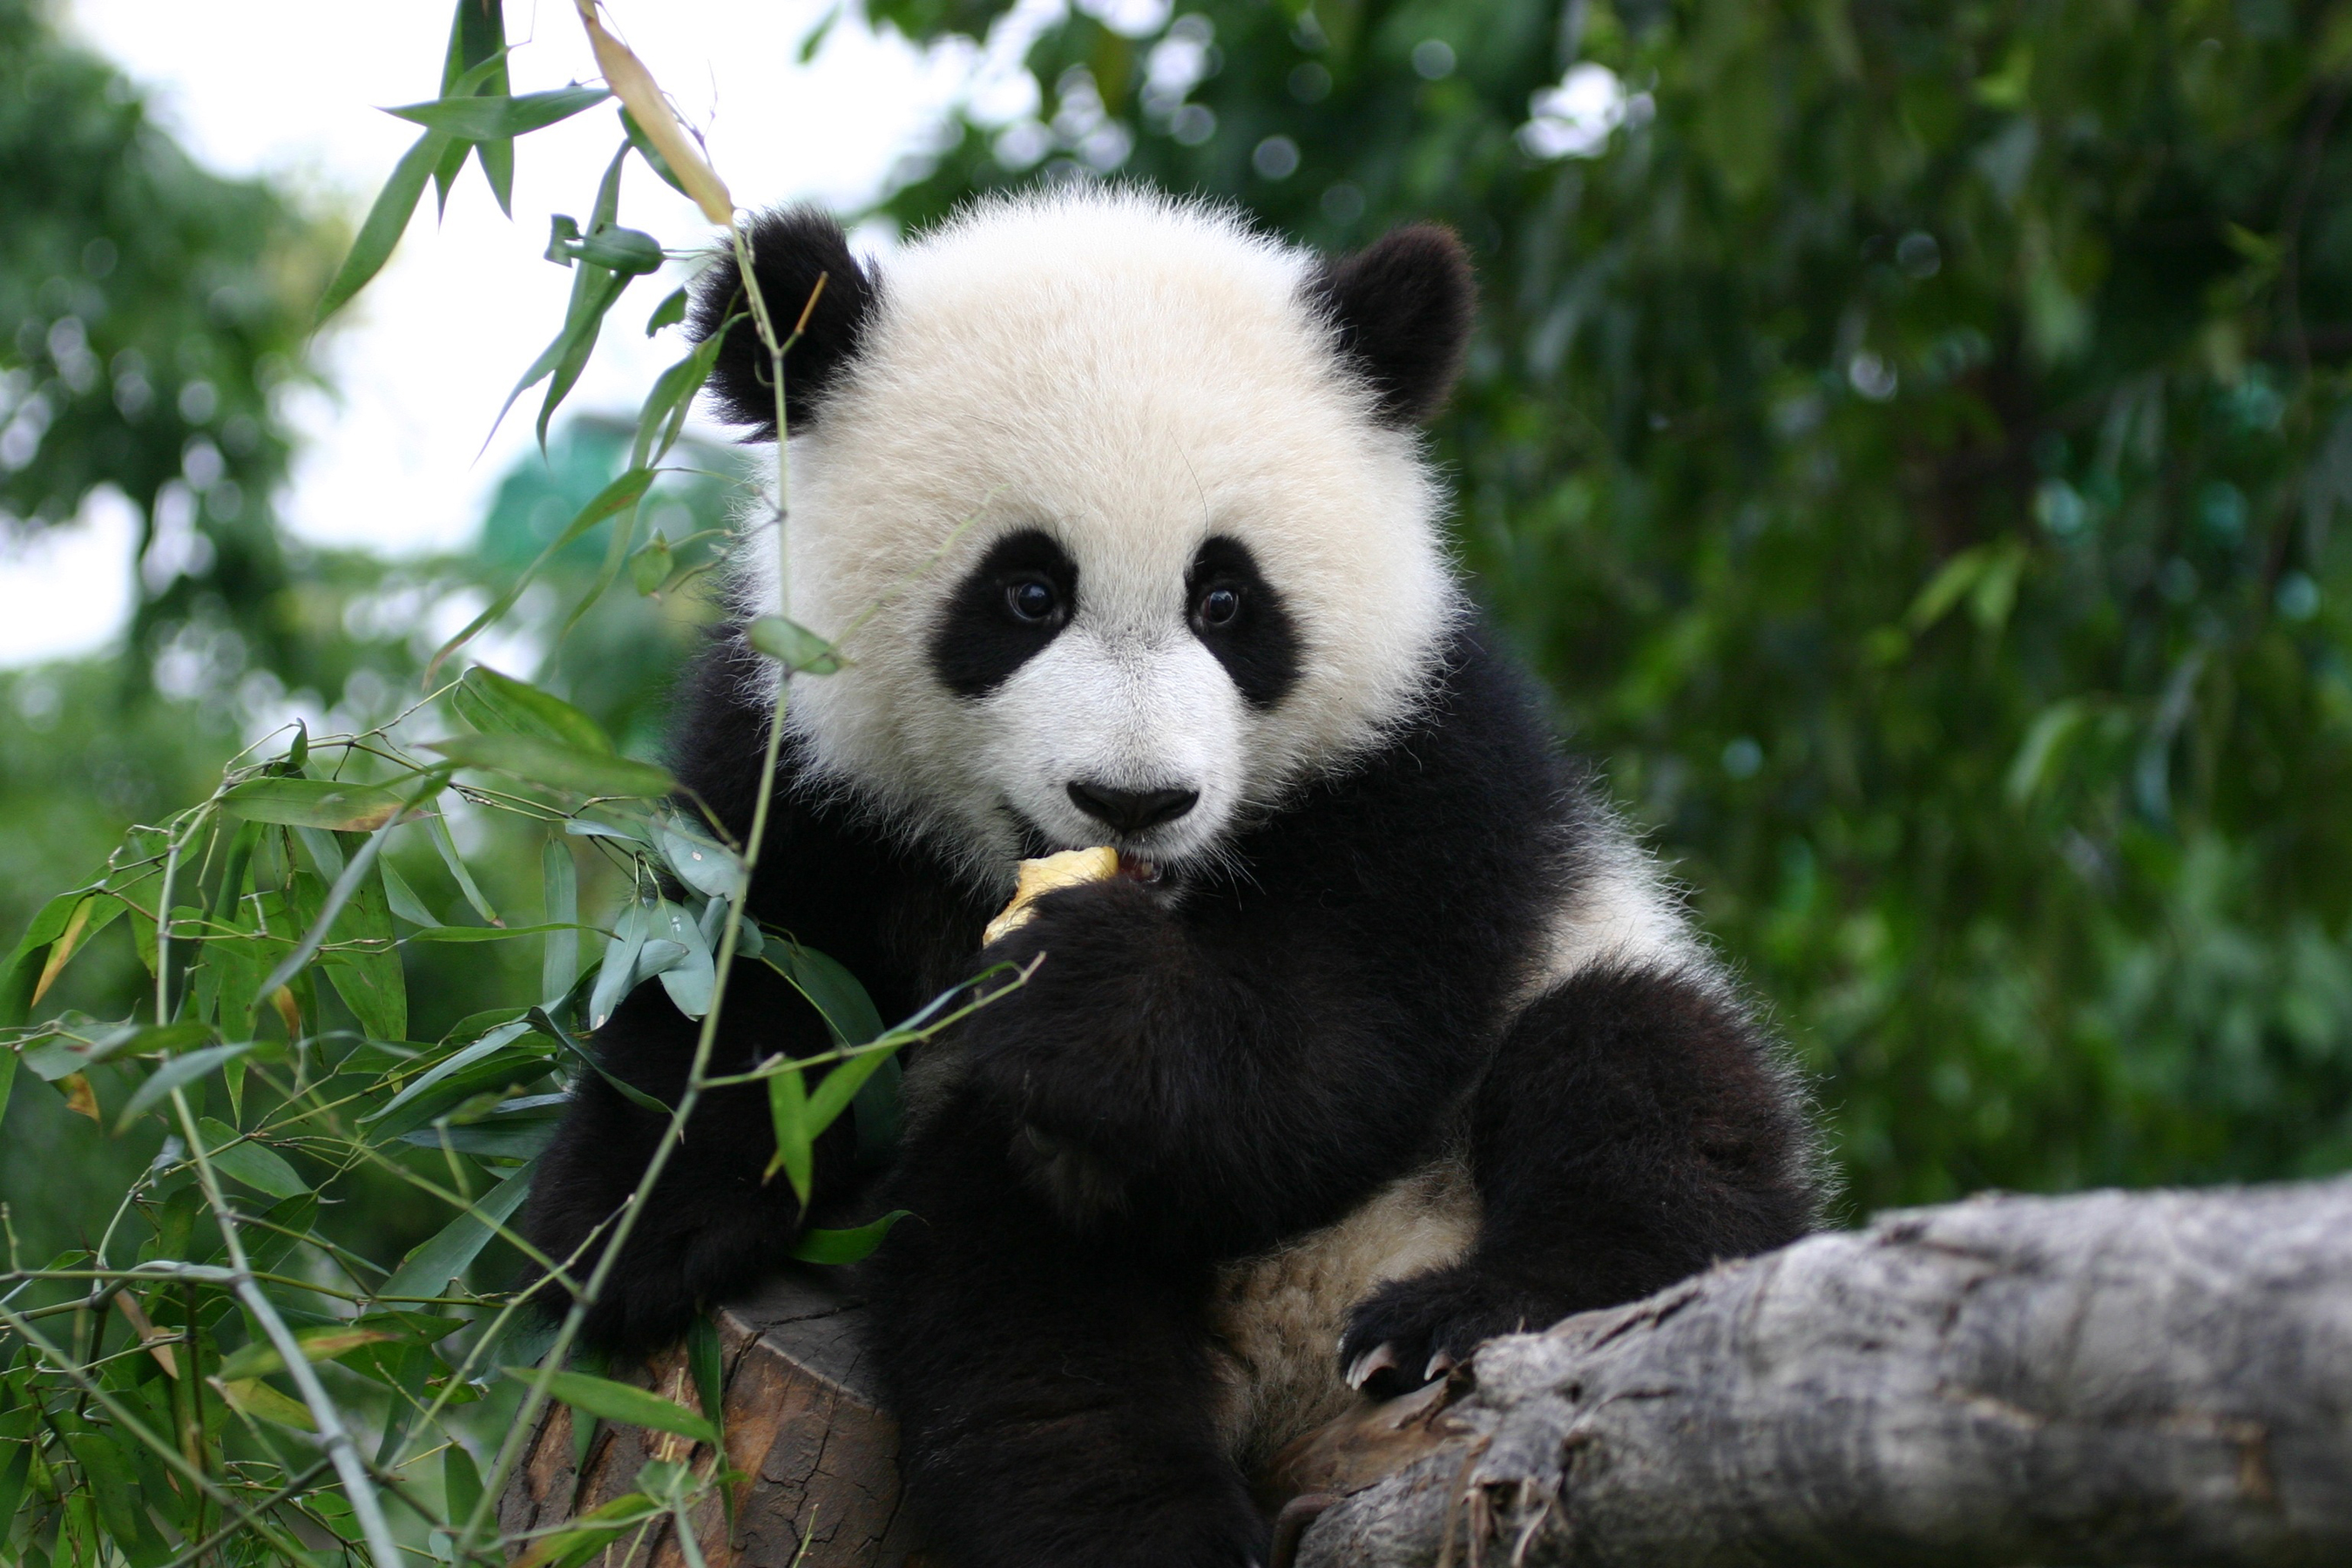 Giant Pandas. | pgcps mess - Reform Sasscer without delay. - photo#36